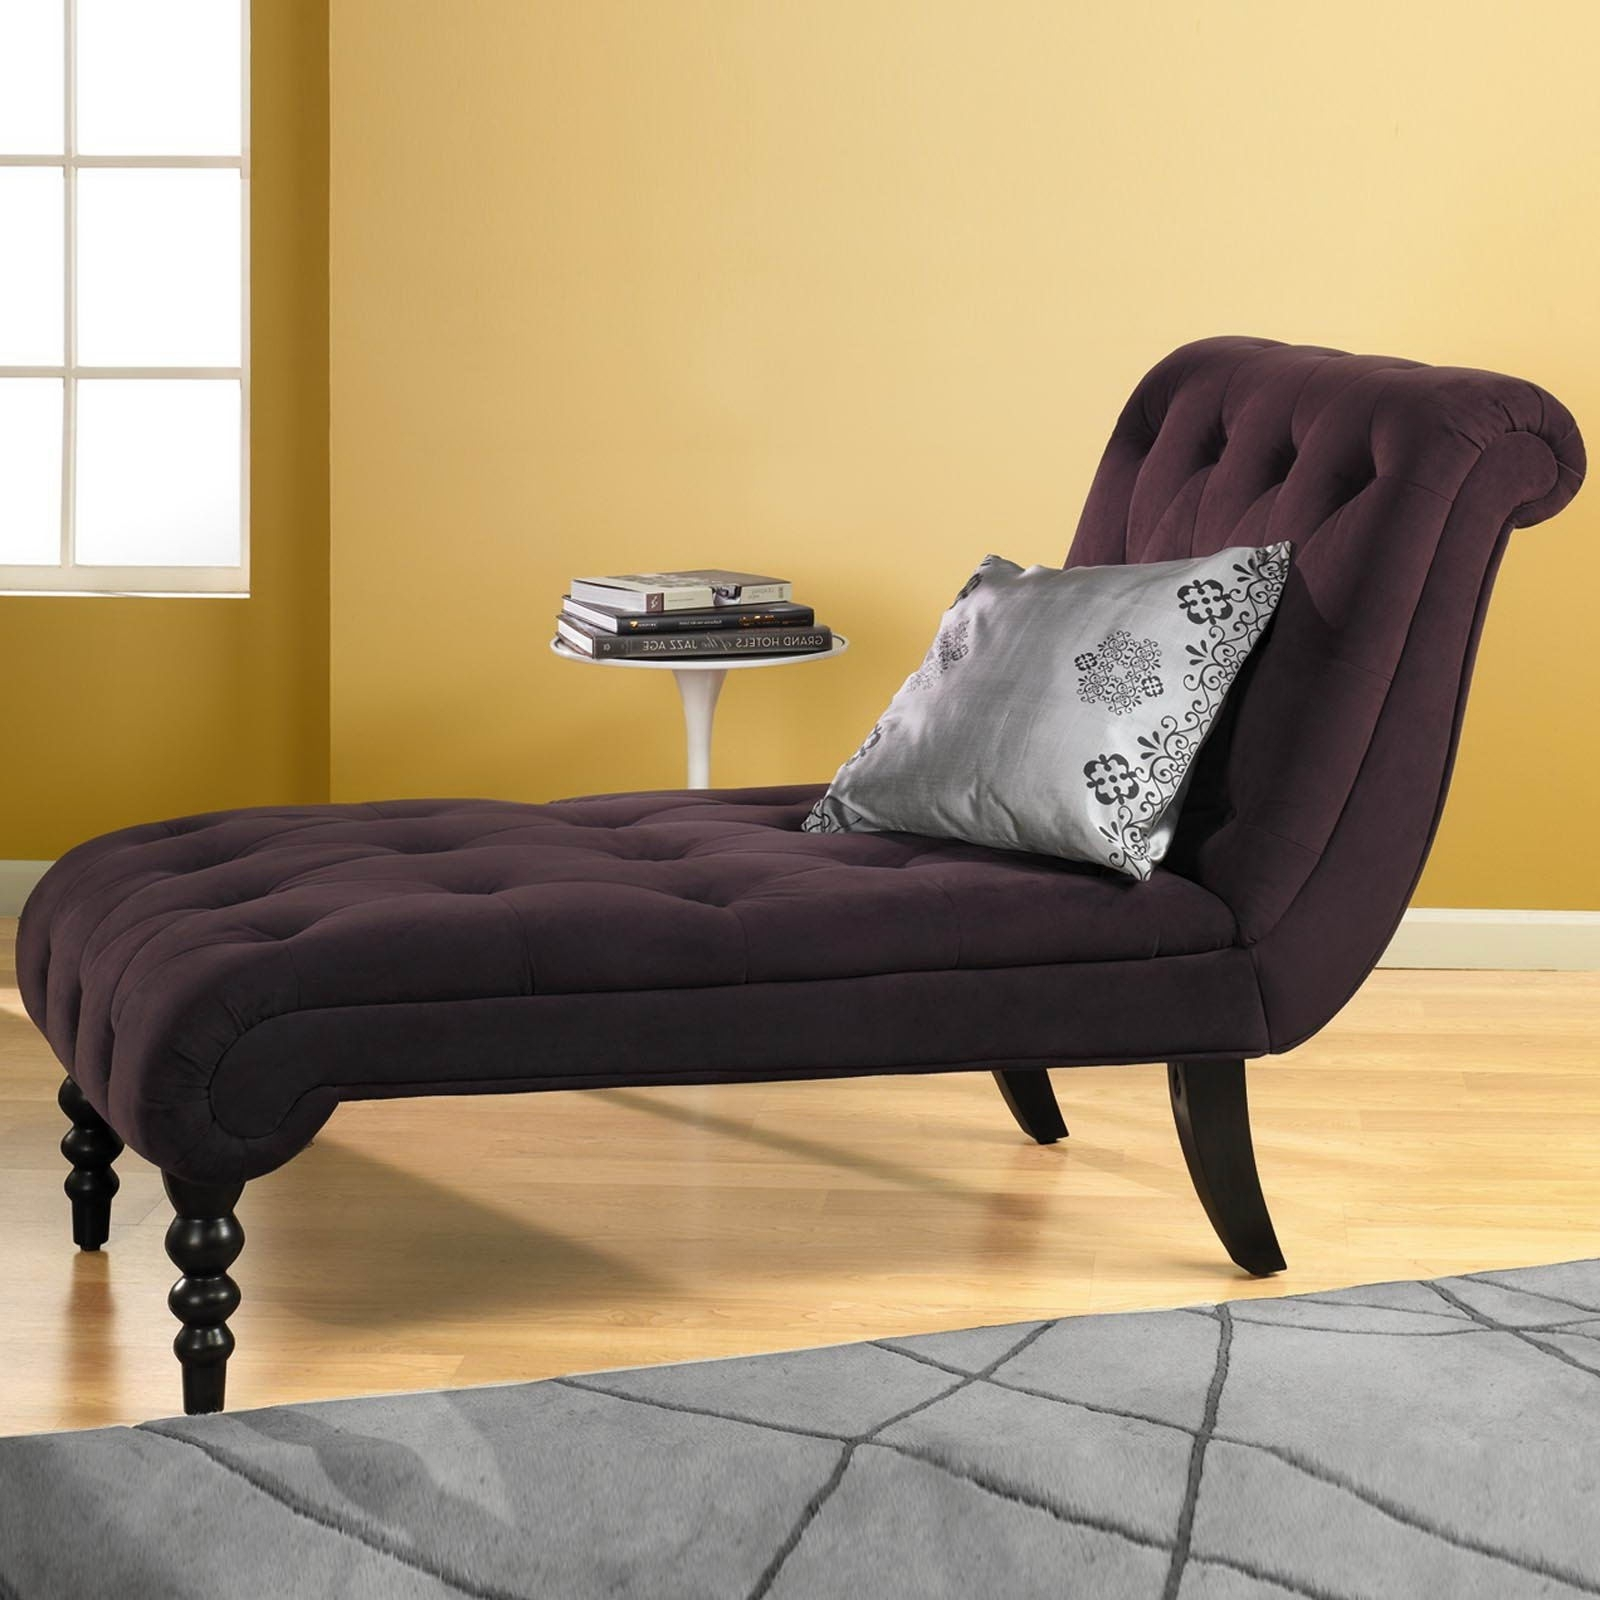 Popular Indoor Chaise Lounge Chairs Within Cool Indoor Chaise Lounge (View 14 of 15)